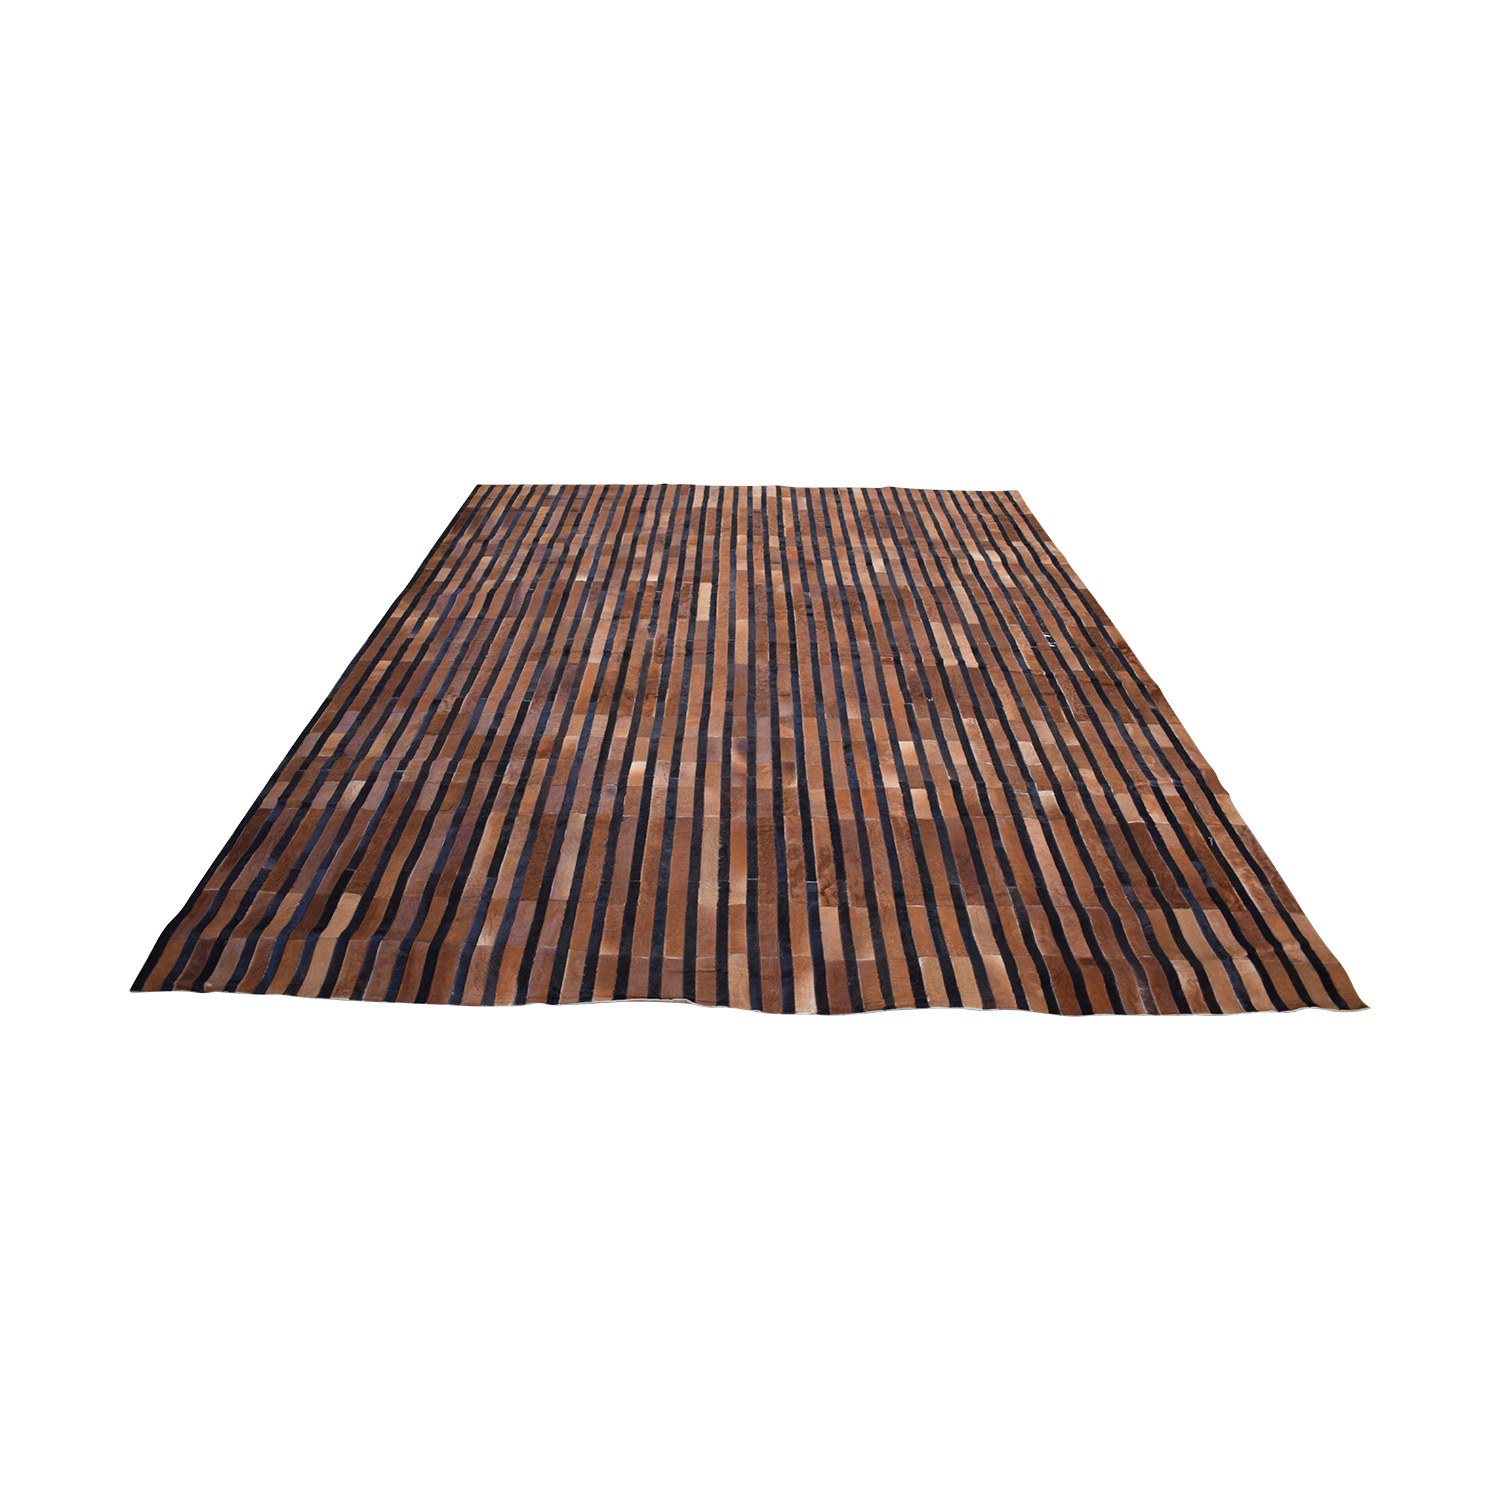 ABC Carpet & Home ABC Carpet & Home Striped Rug on sale